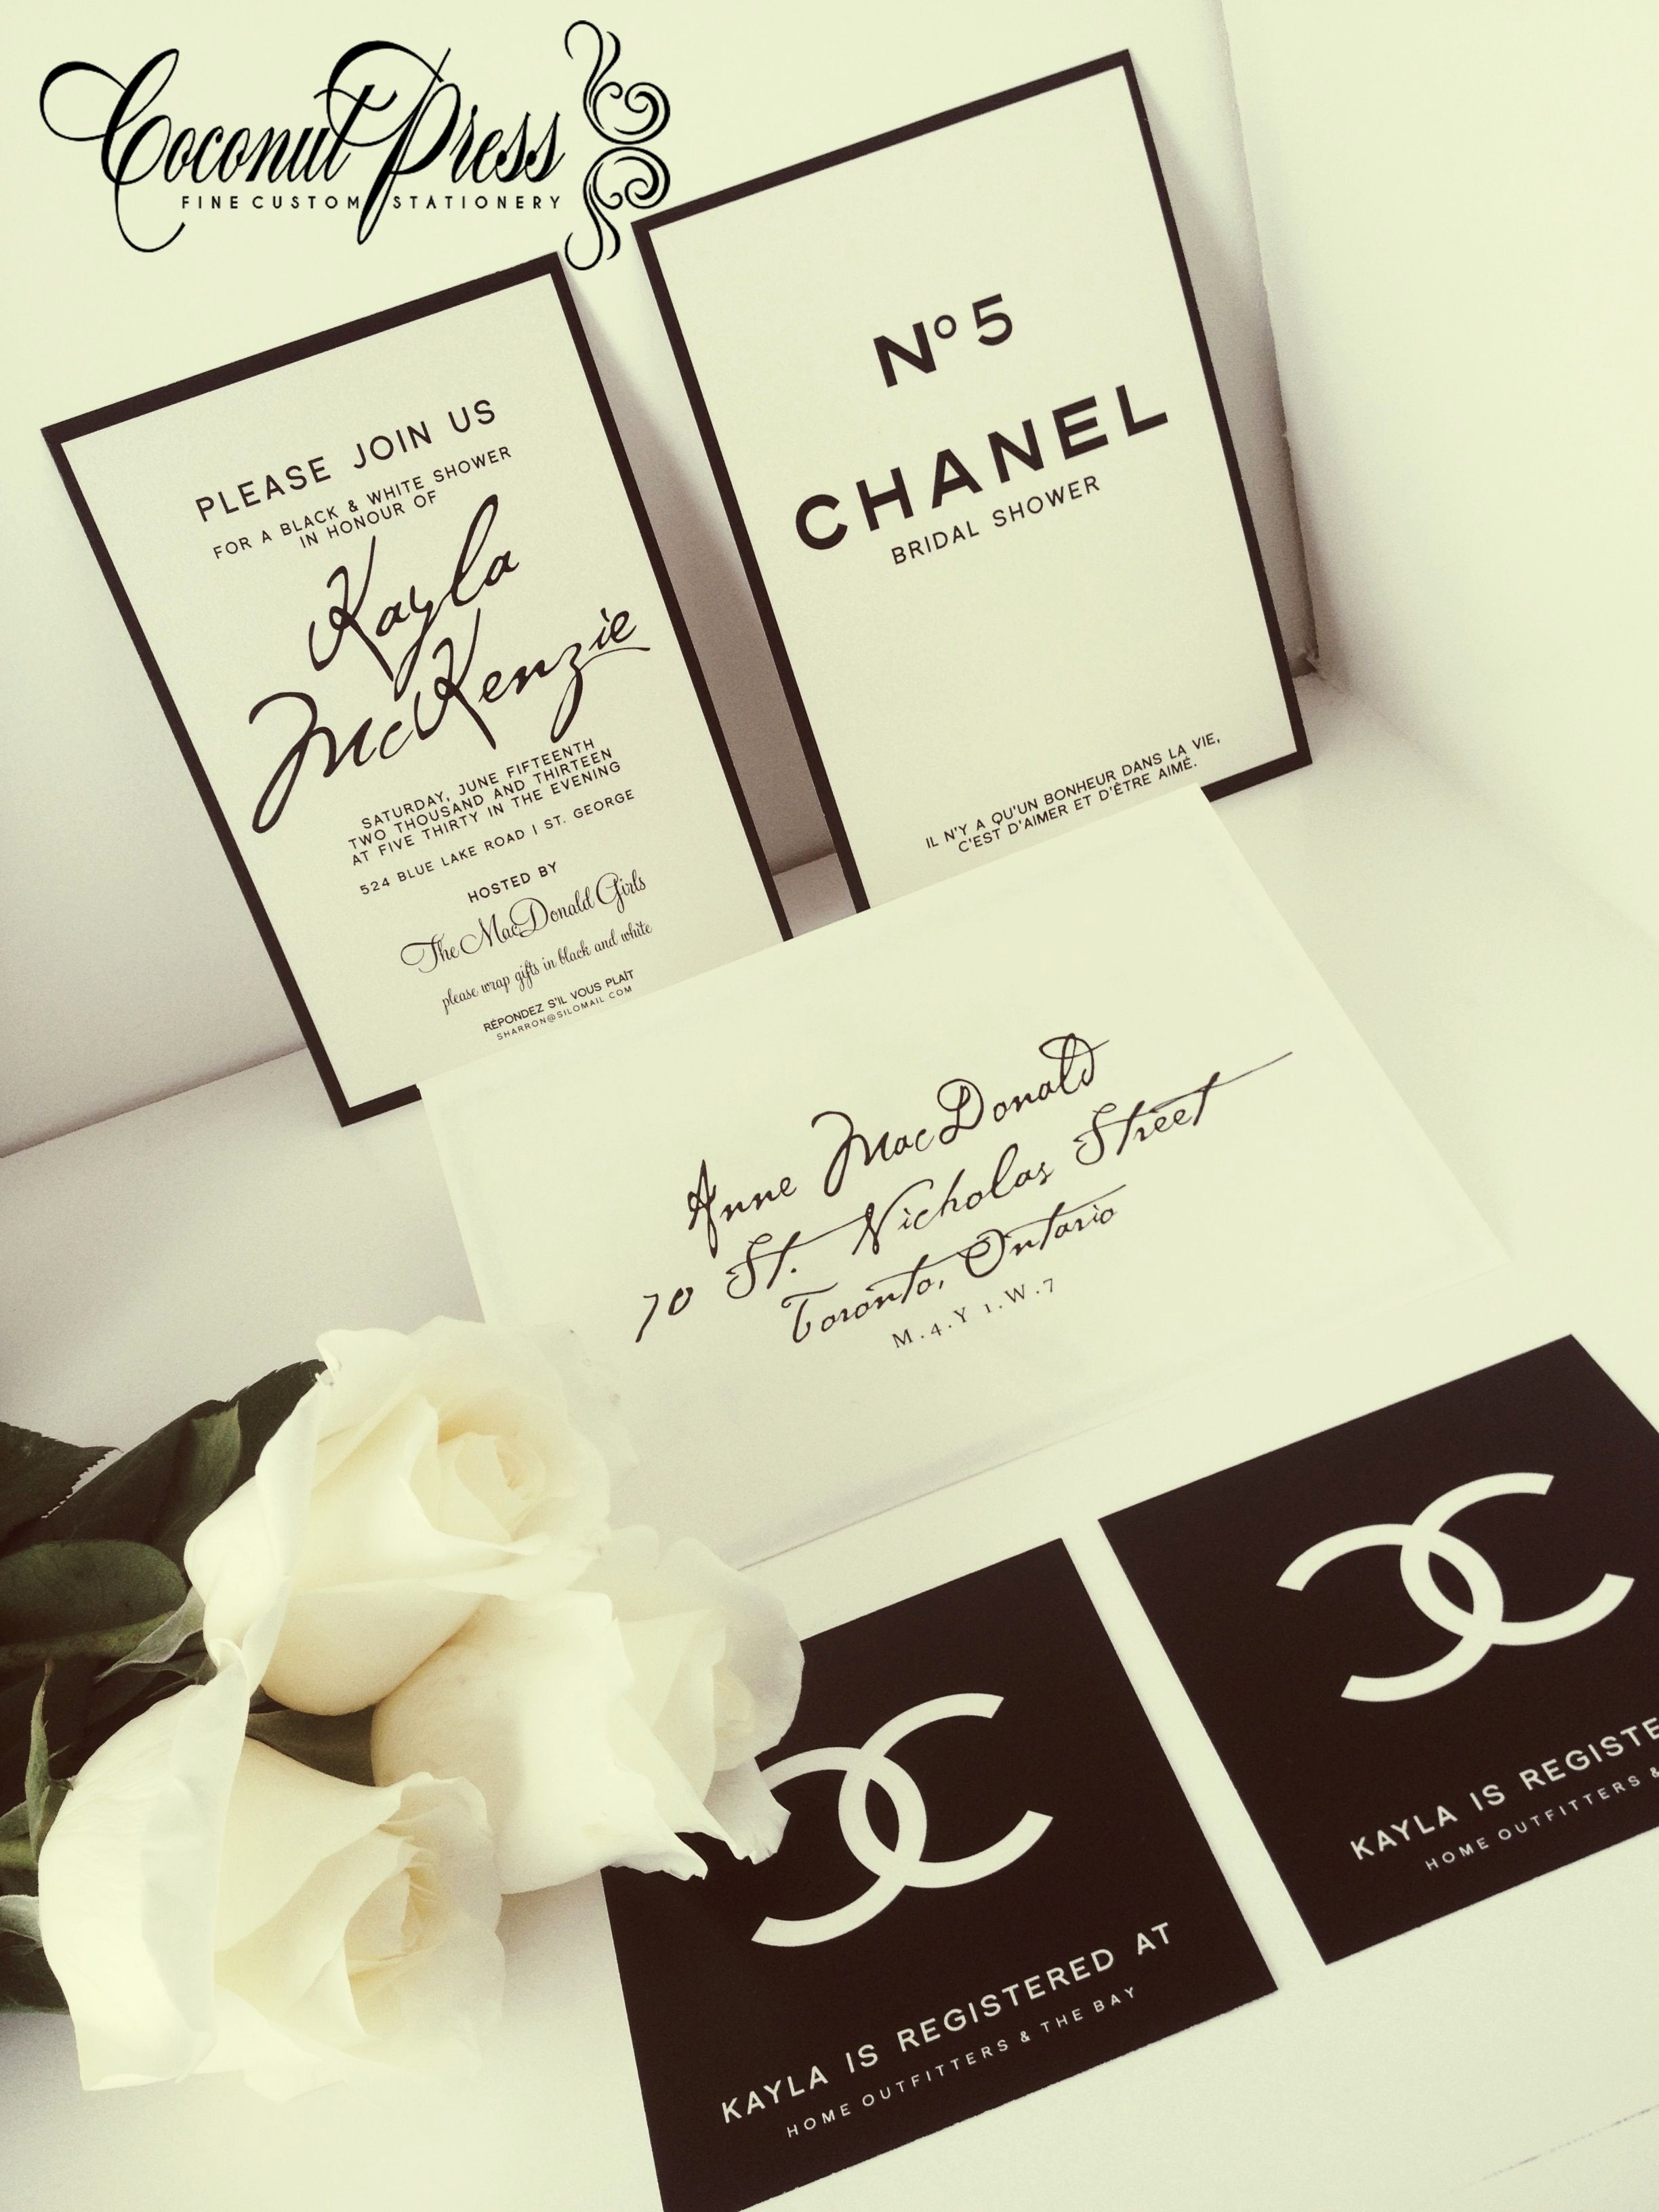 Chanel Bridal Shower Invitation Lovely Coco Chanel Inspired Black & White Shower Invitations